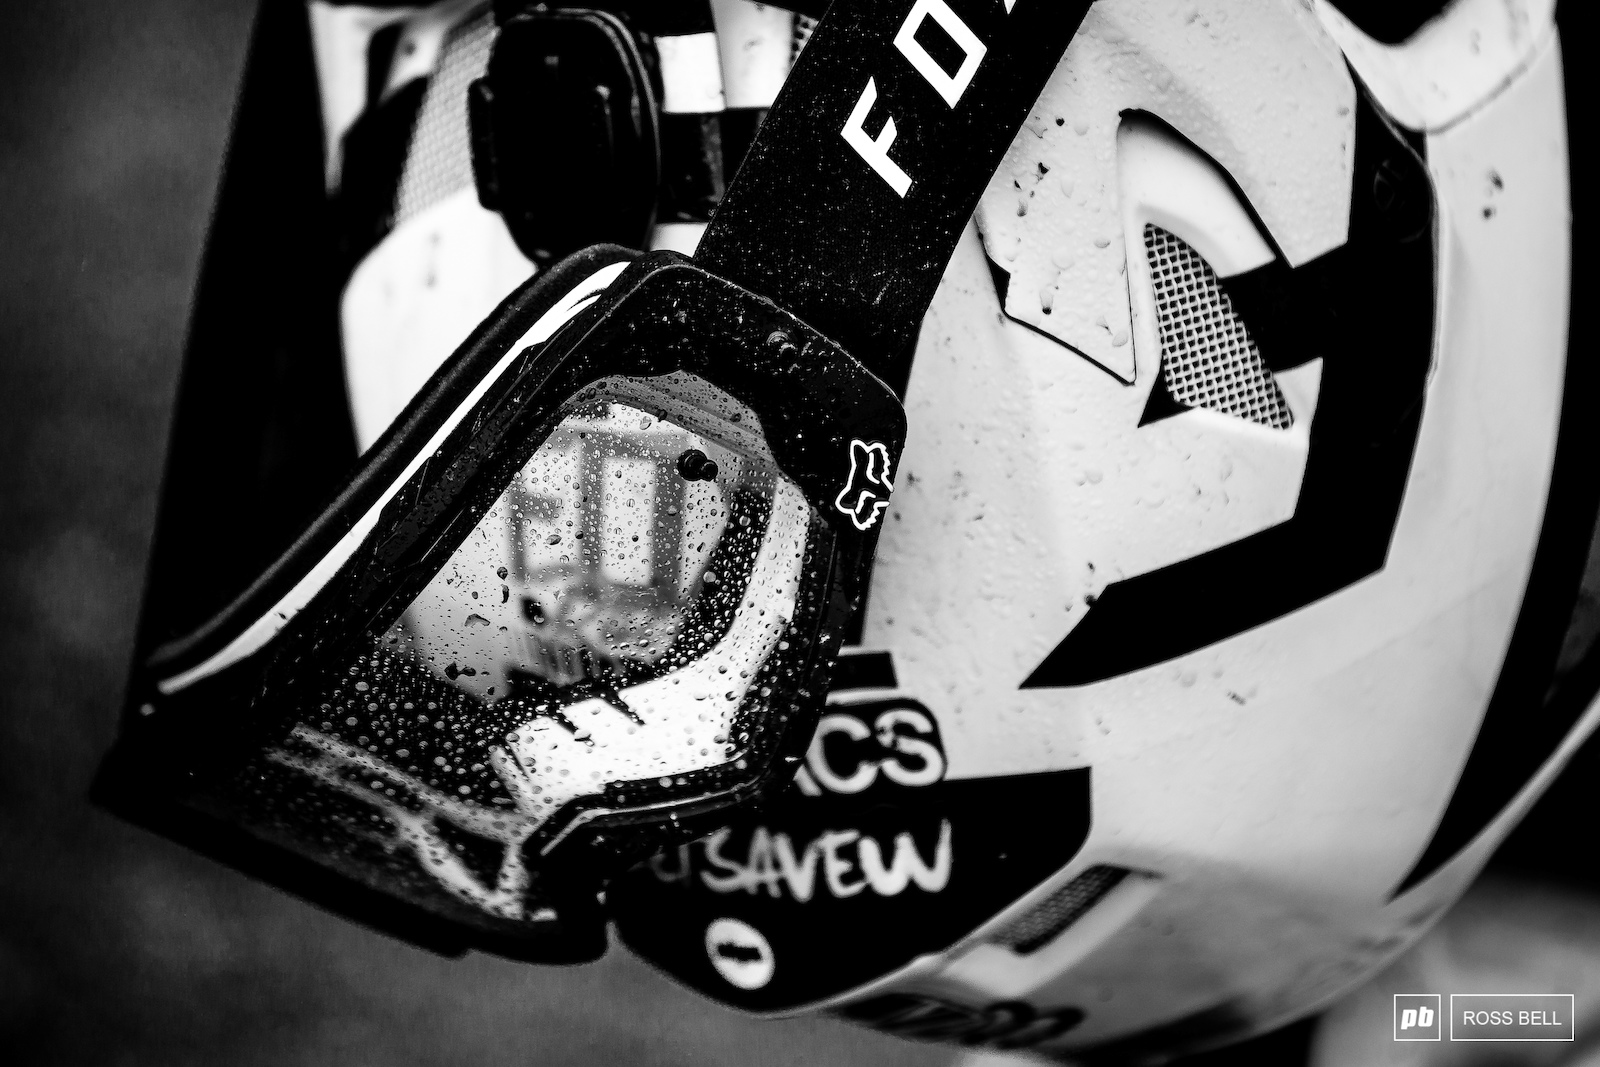 After riding on a largely dry track all weekend rider s kit was left wet and muddy with the rain timing it s arrival nicely for race runs.